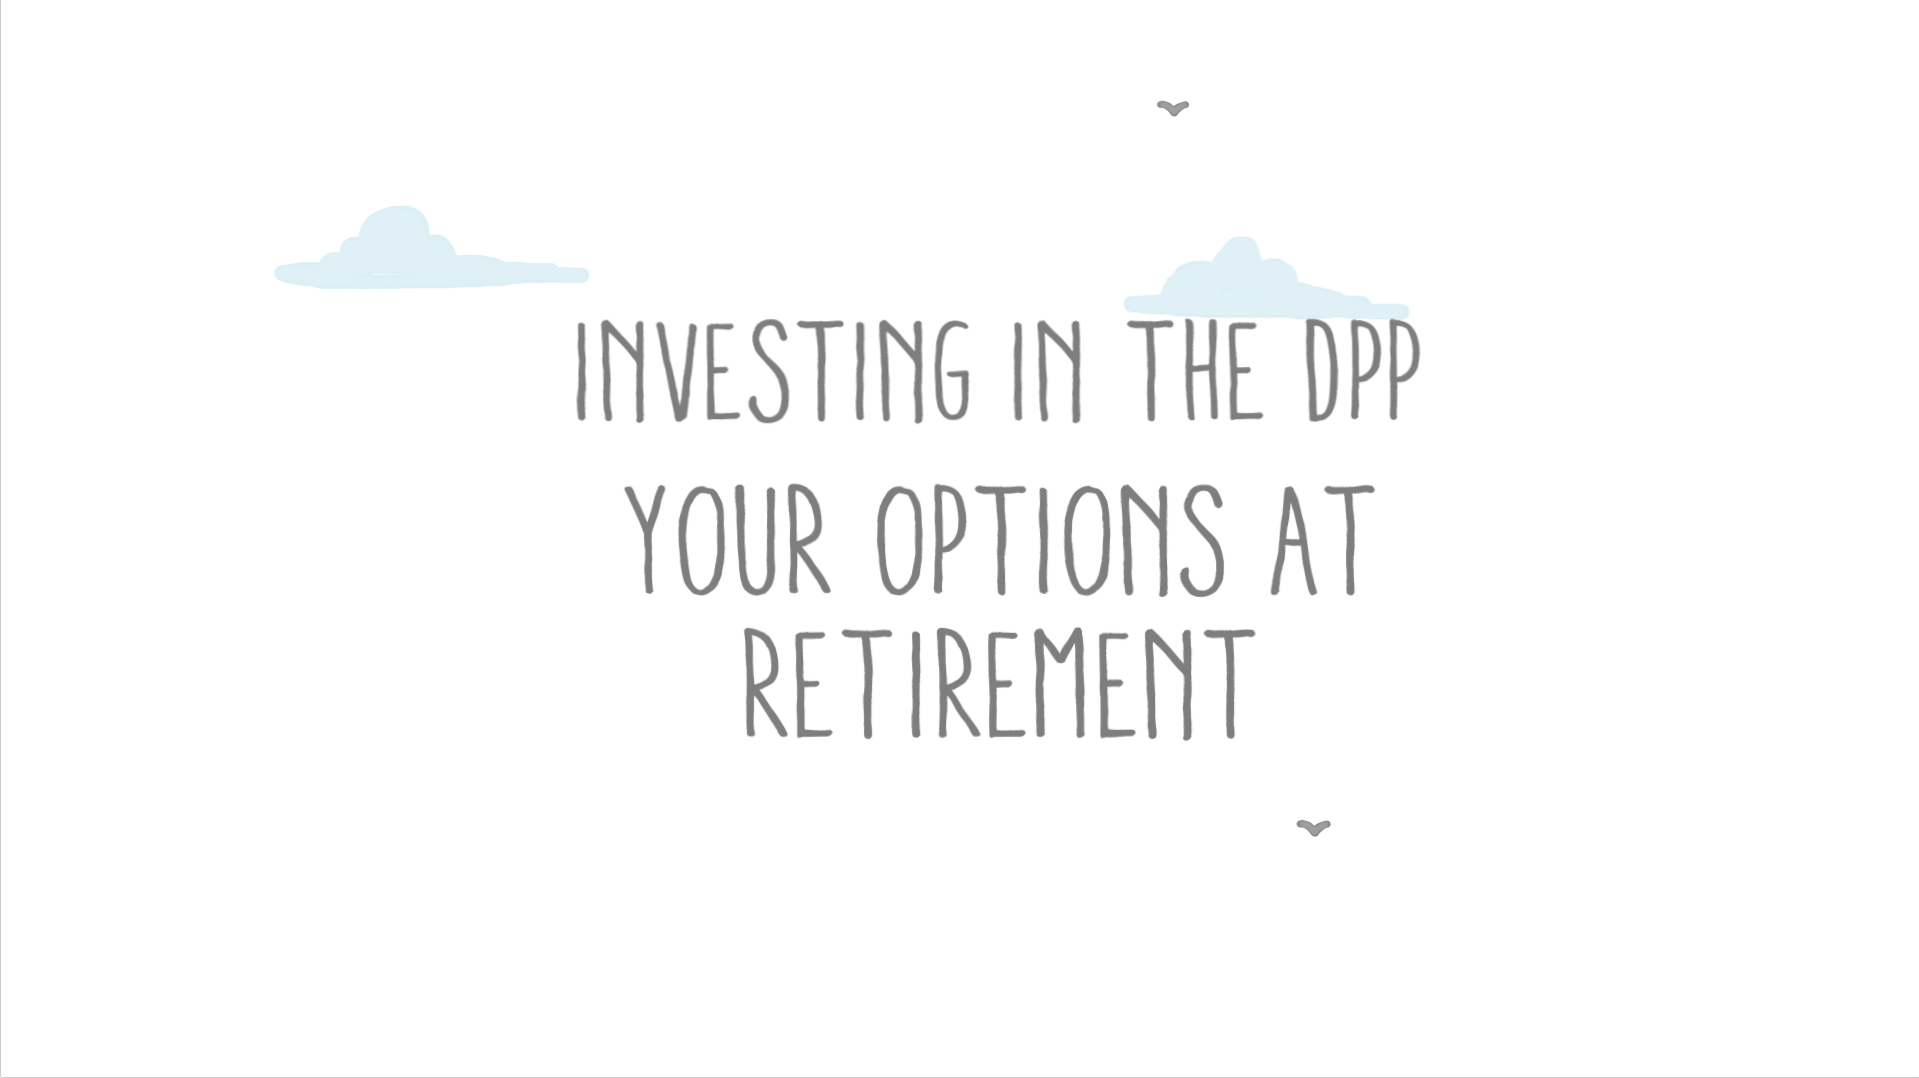 Investing in the DPP your options at retirement